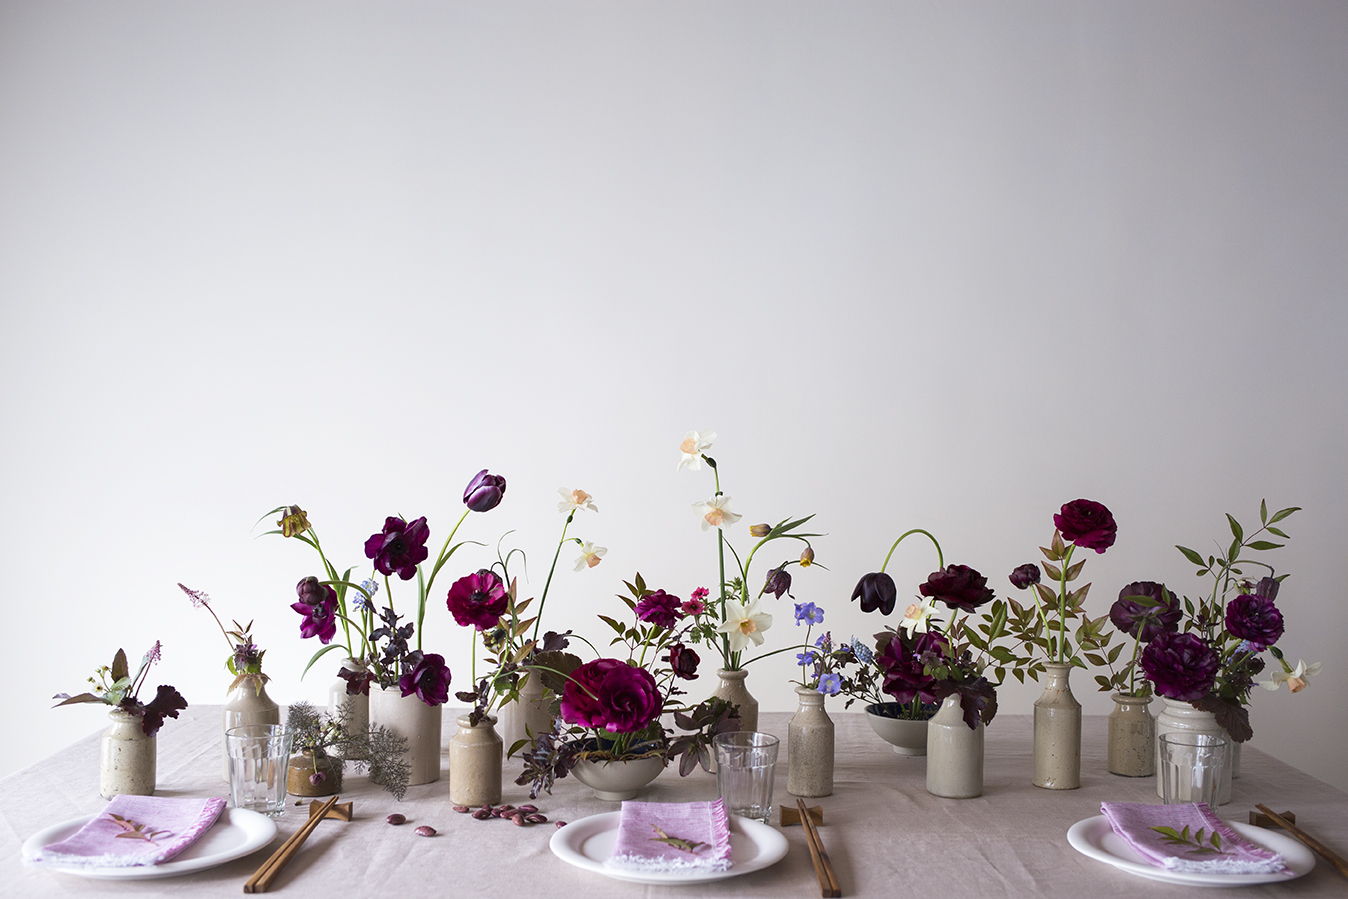 Flower School | Table styling 1:1 class: bronze, blue, plum and accents of peach in ceramic vessels